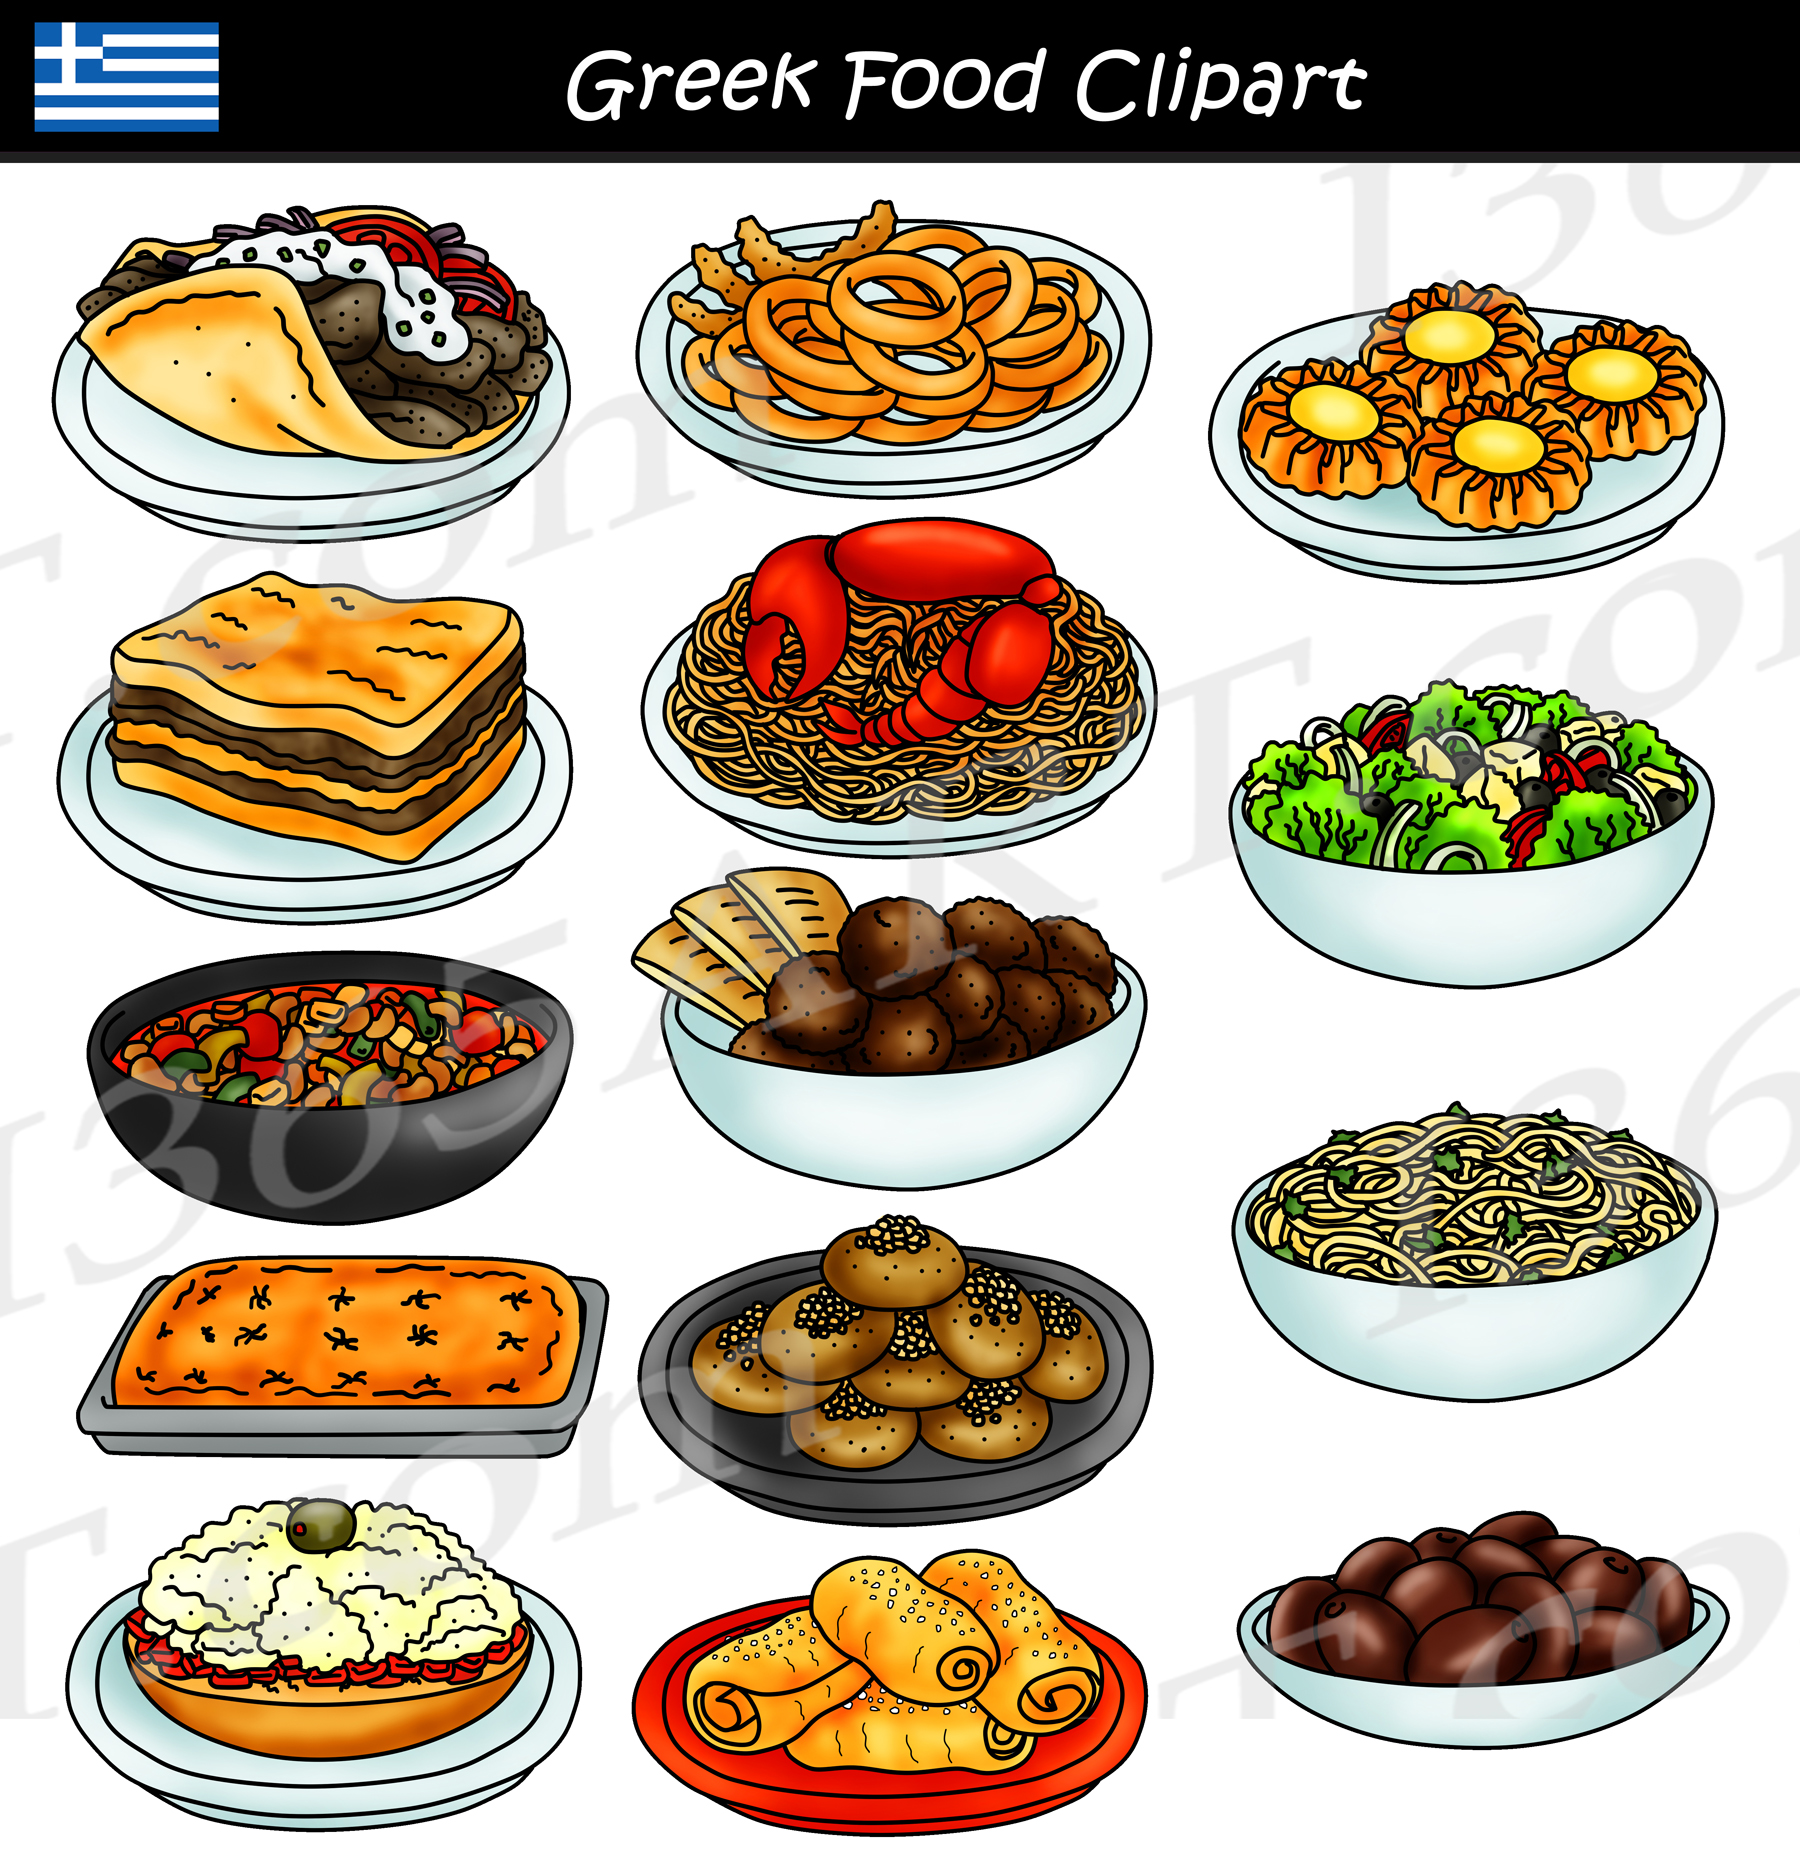 Clipart greelk picture Greek Food Clipart Graphics Download picture